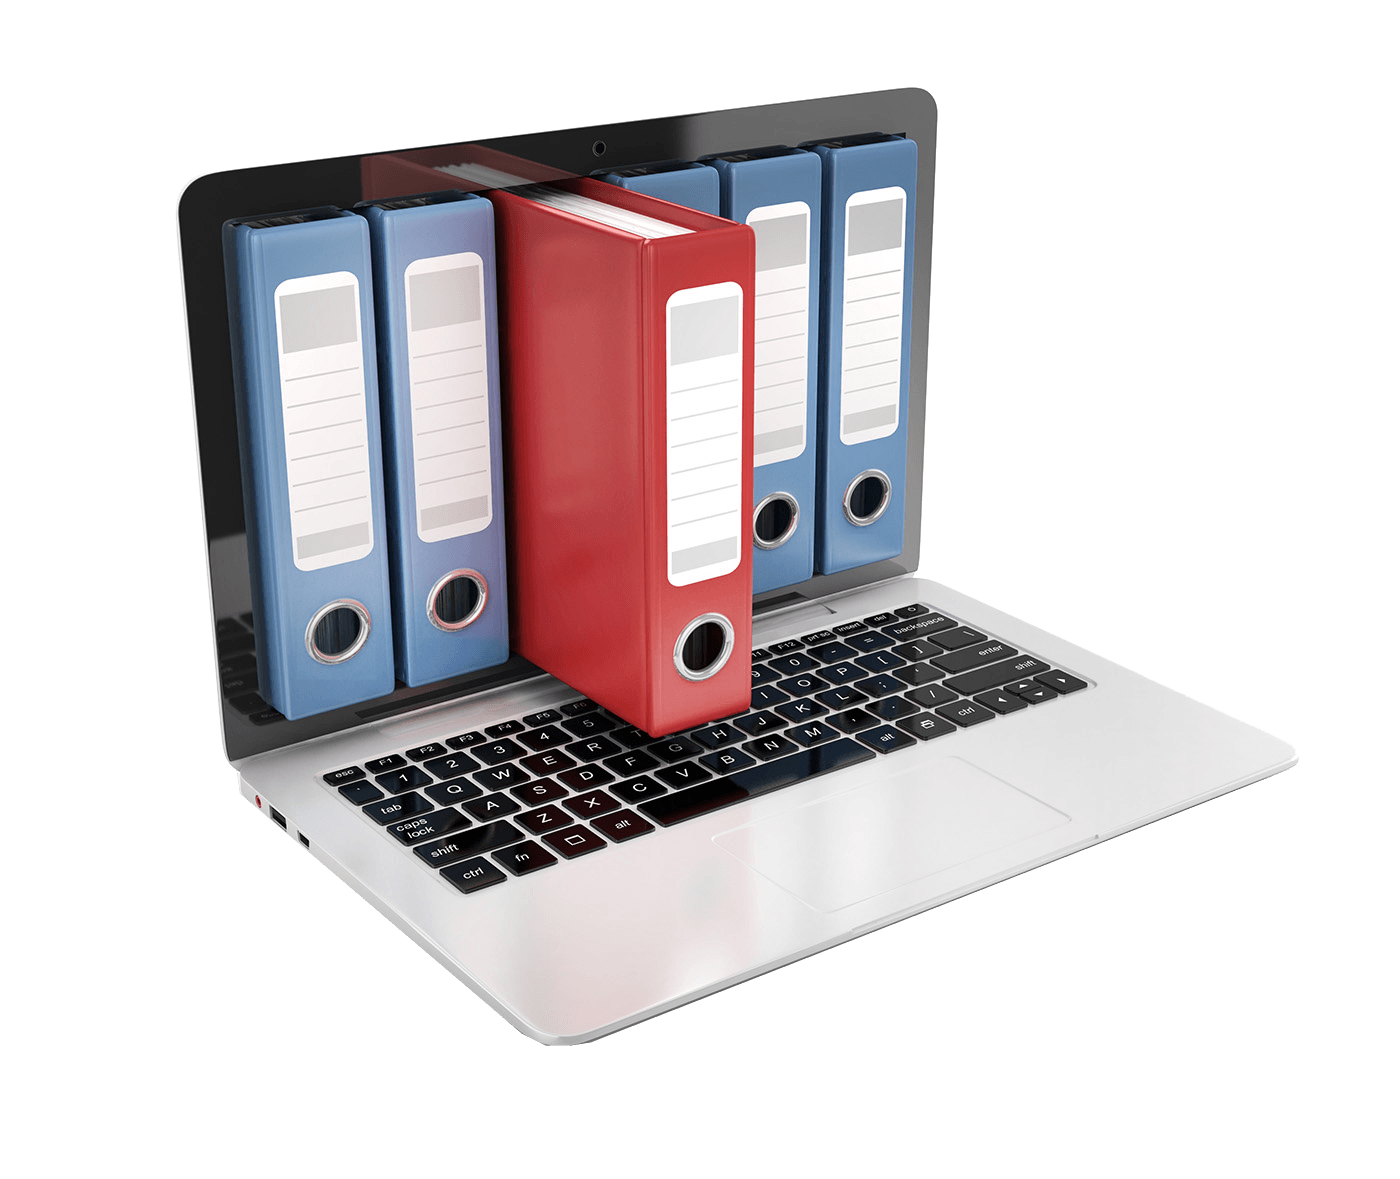 kisspng-electronic-document-and-records-management-system-creative-computer-bookshelf-5a96235ce99287.3235115115197888929567